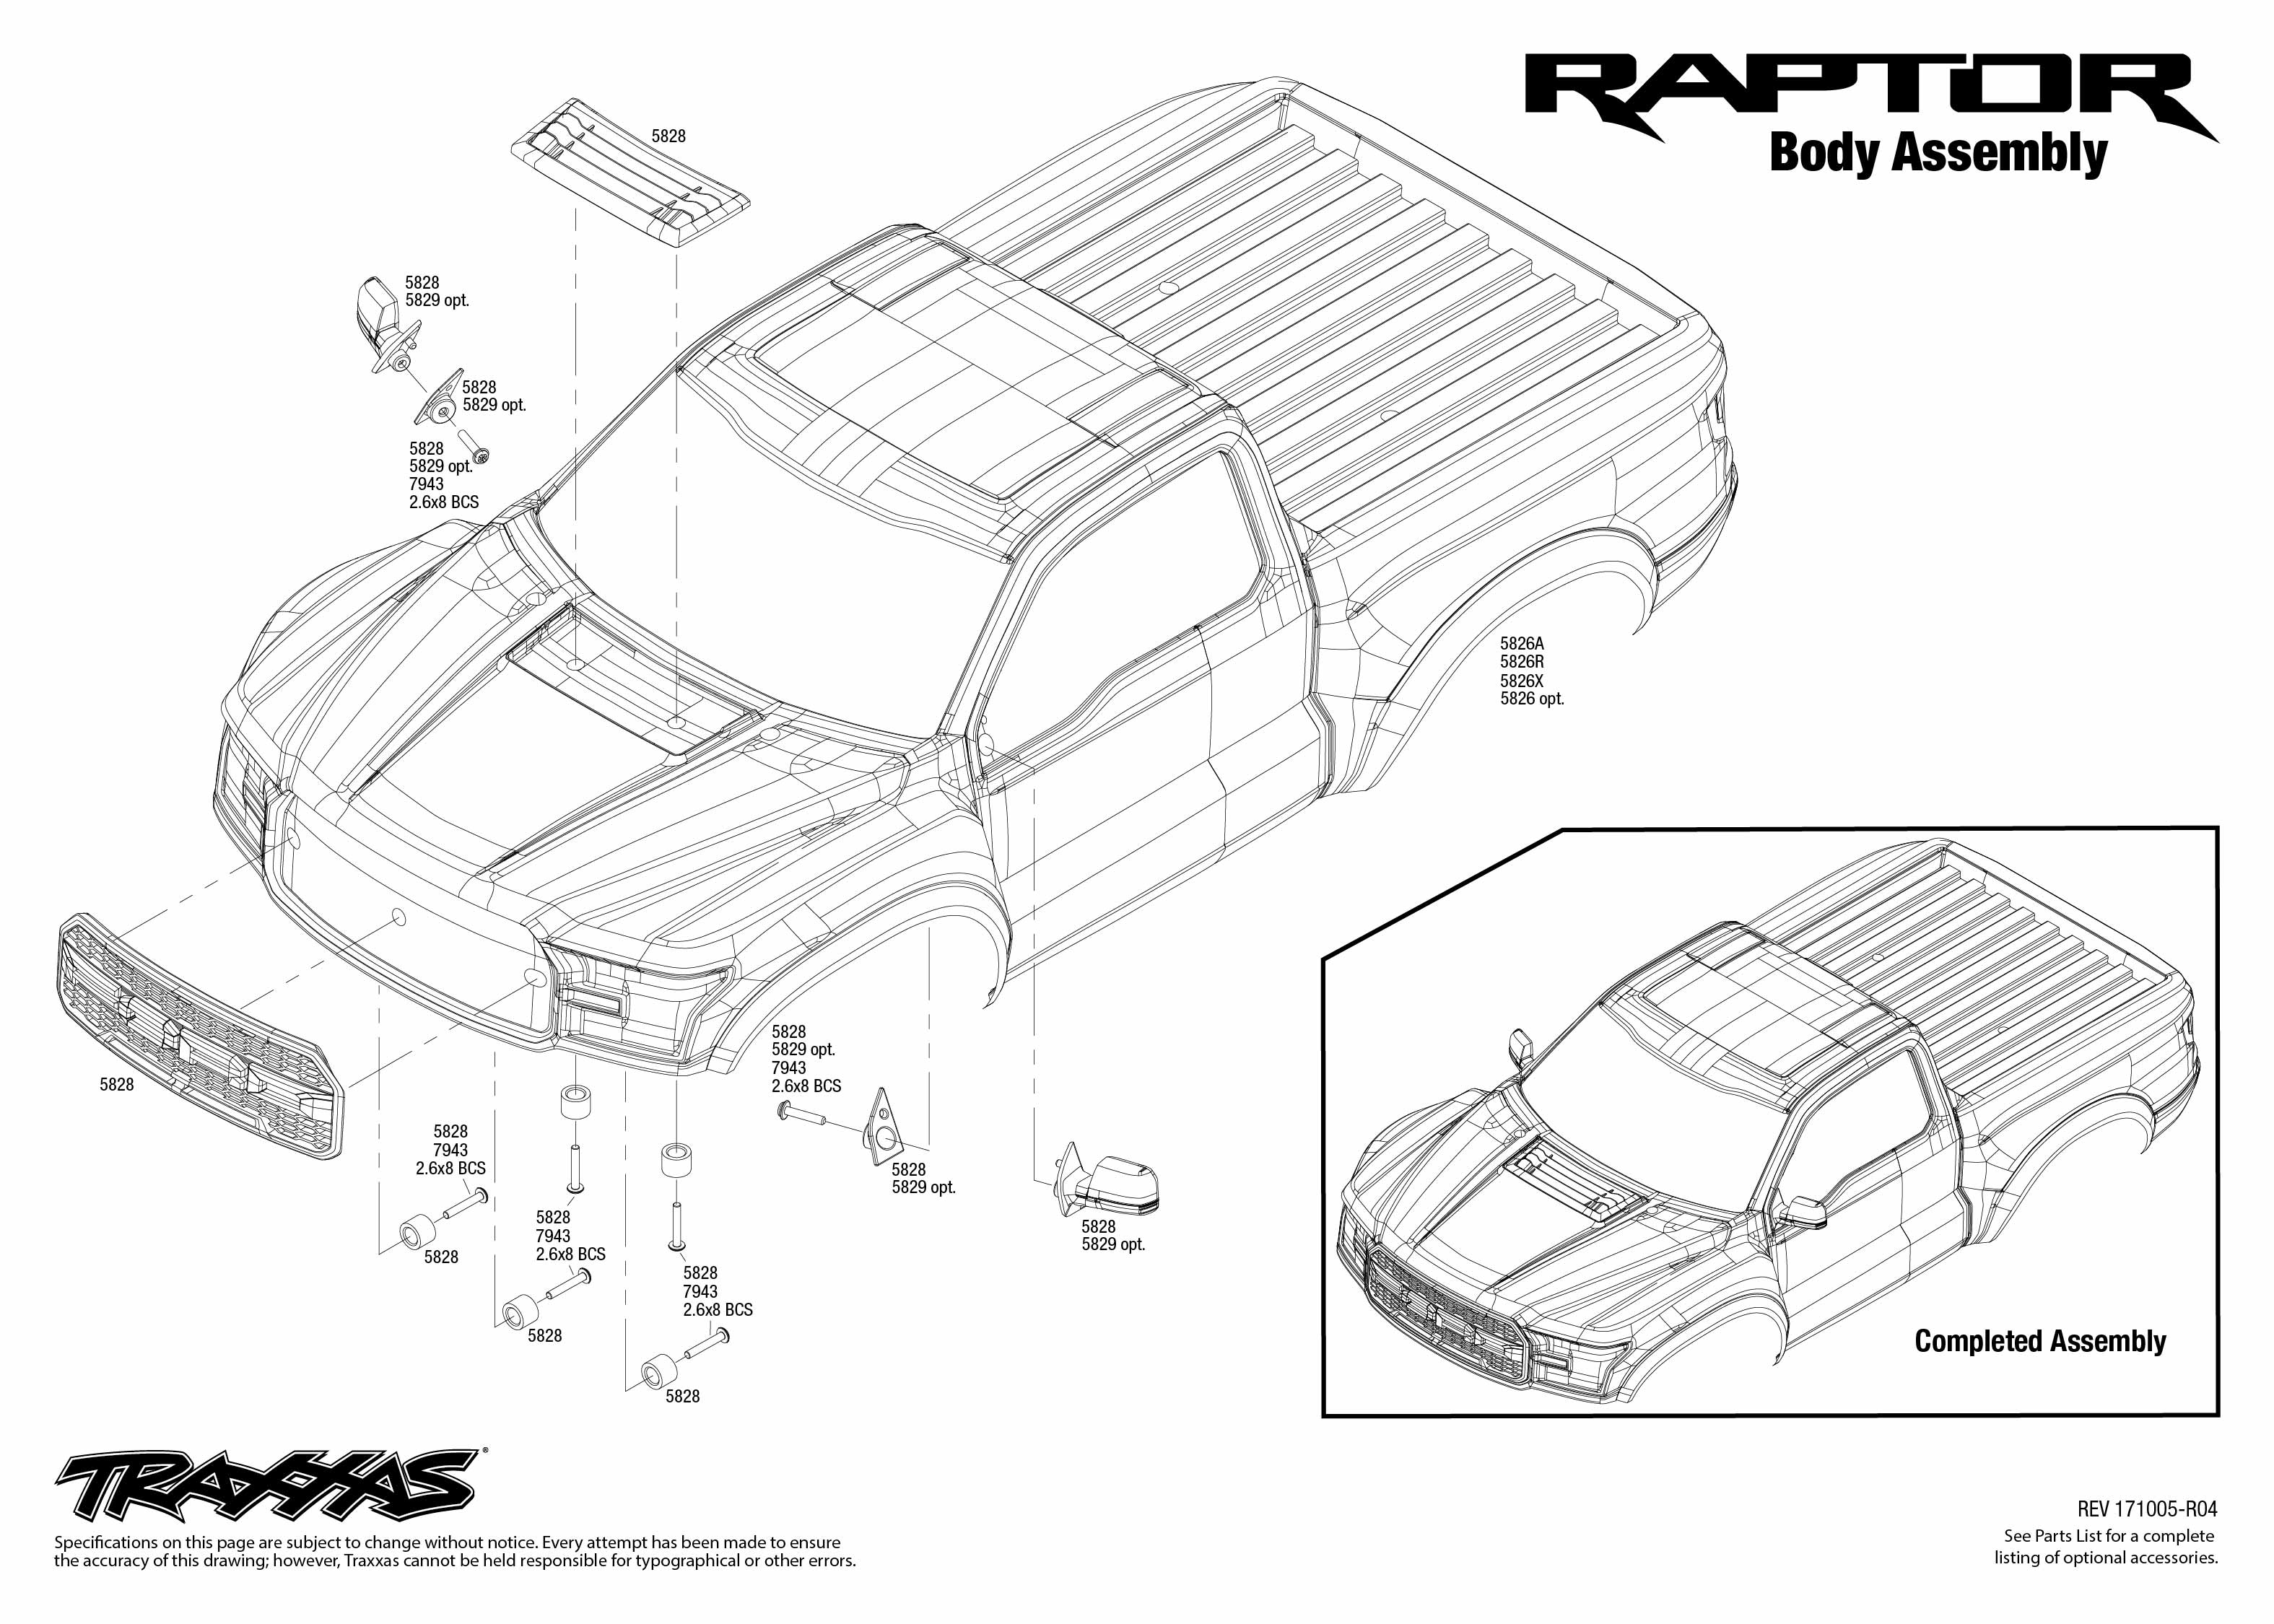 Ford F 150 Raptor 1 Body Assembly Exploded View